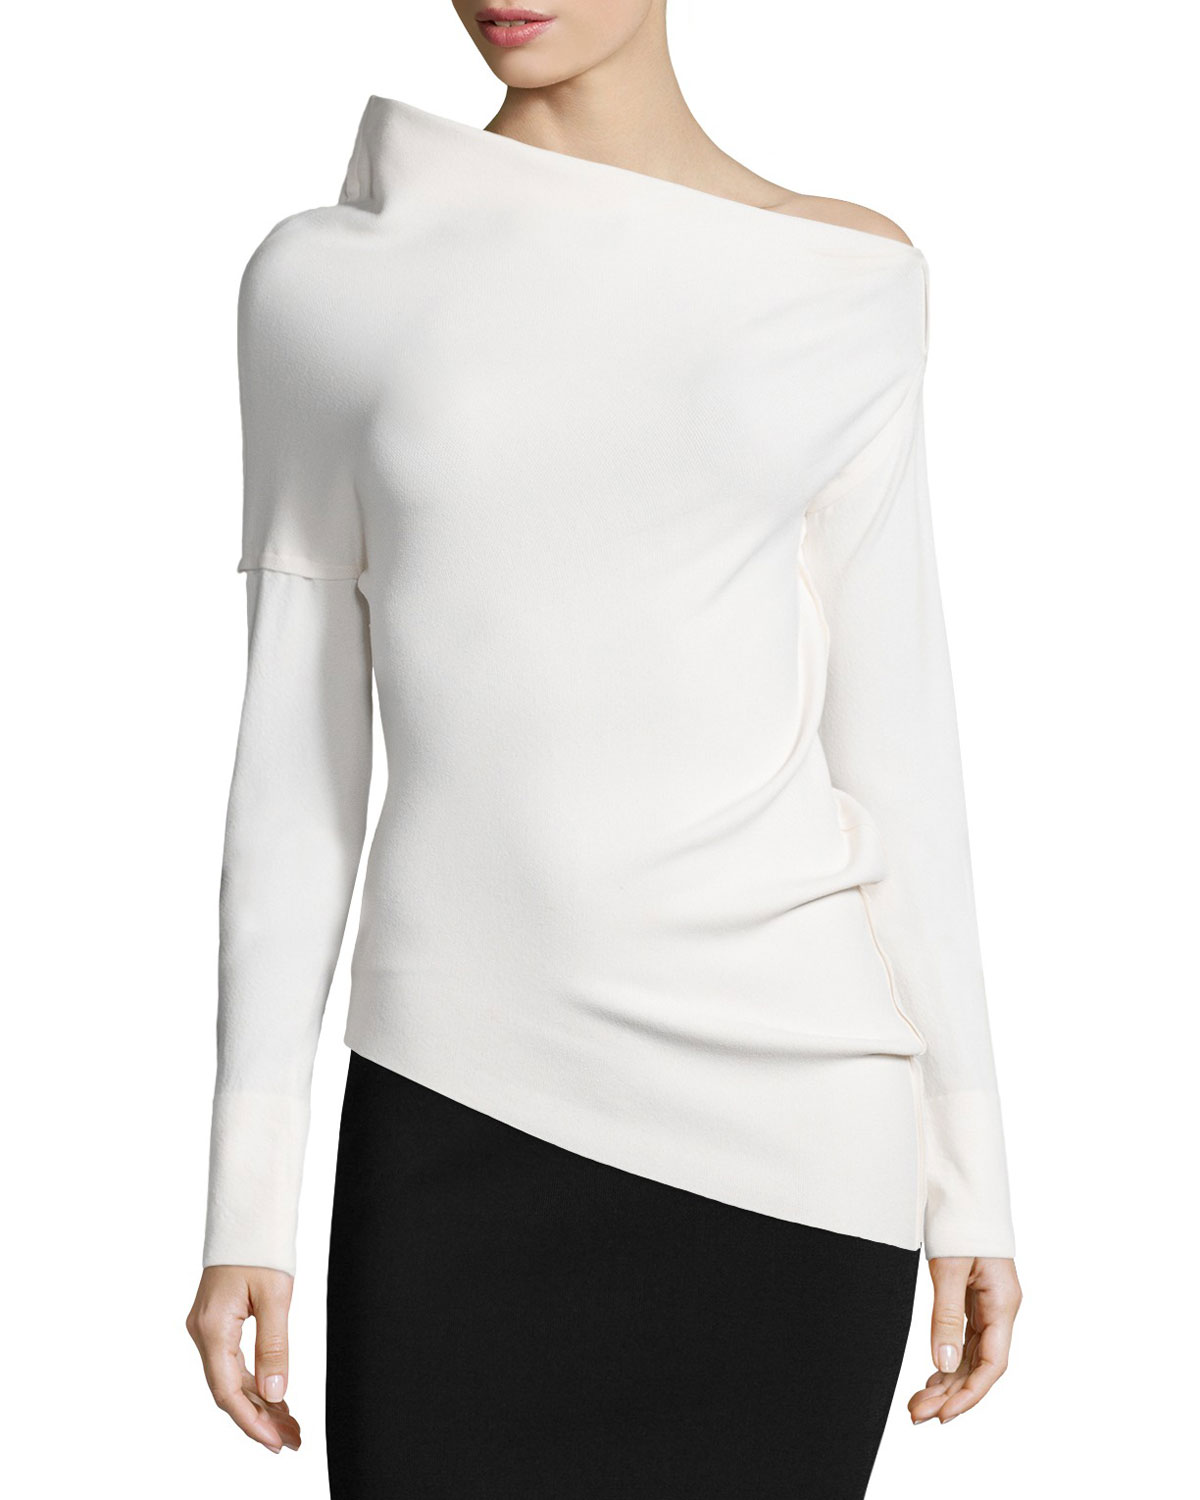 6b10f6e740497 Donna Karan Asymmetric Structured Crepe Top